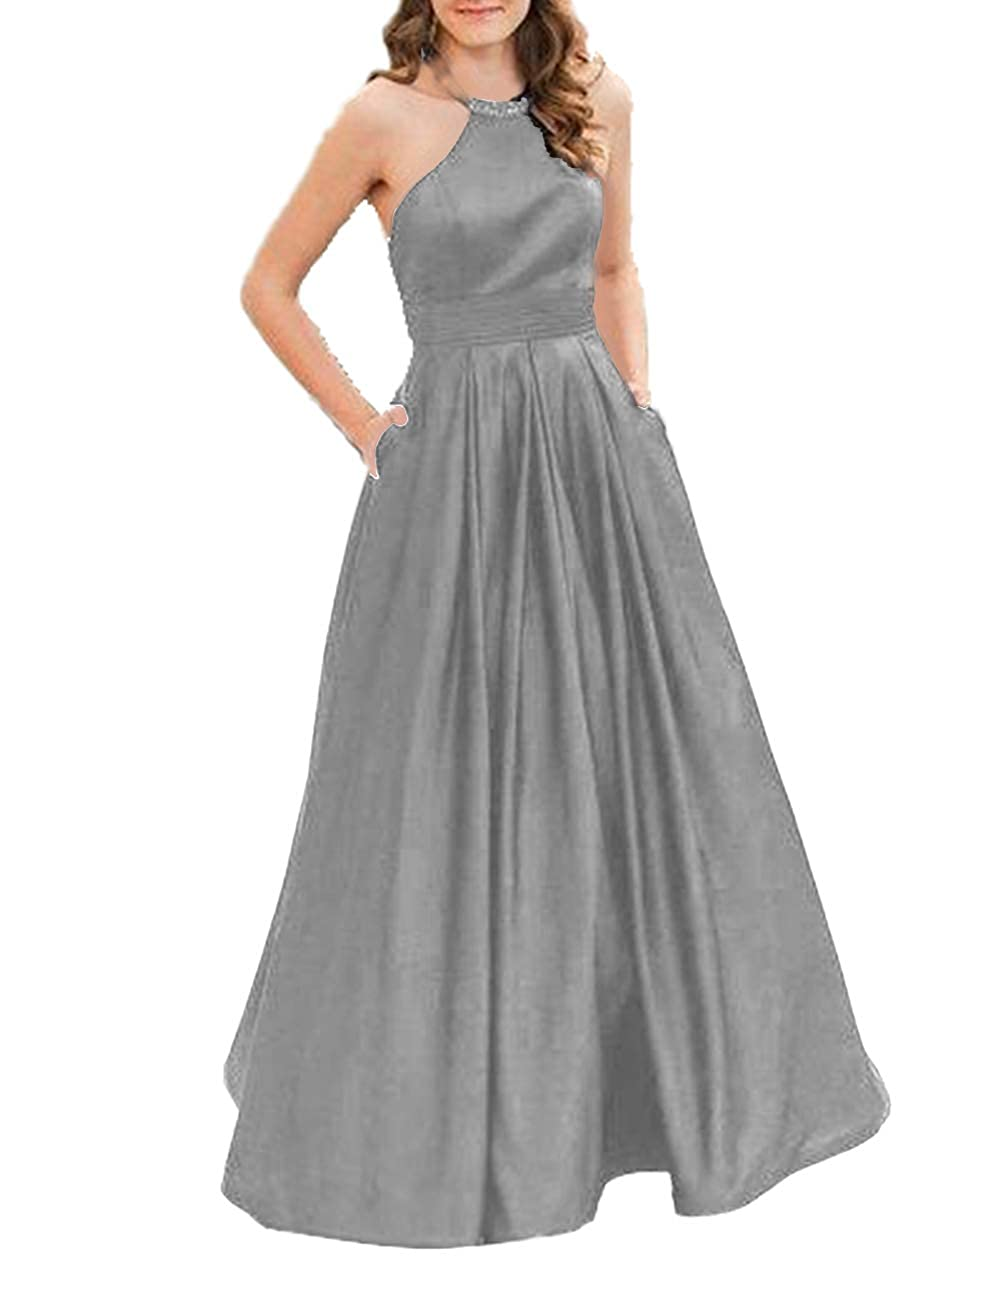 Silver JAEDEN Prom Dress Long Evening Dresses for Women Formal Evening Gowns Halter Prom Dress 2019